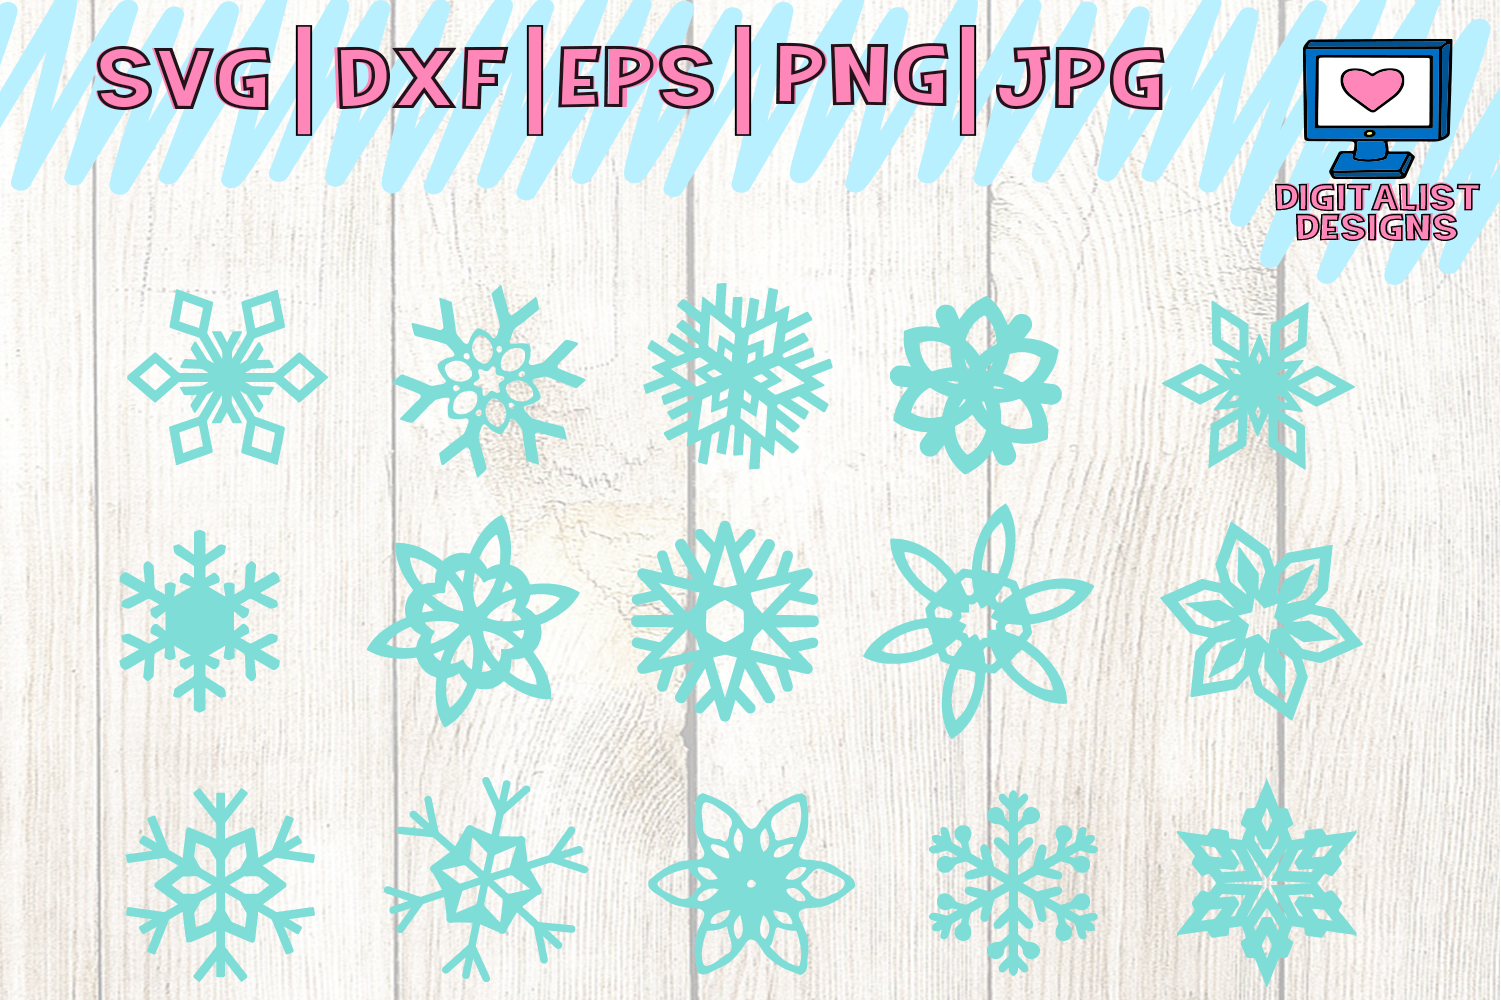 christmas bundle svg, dxf, png, jpg, eps example image 5